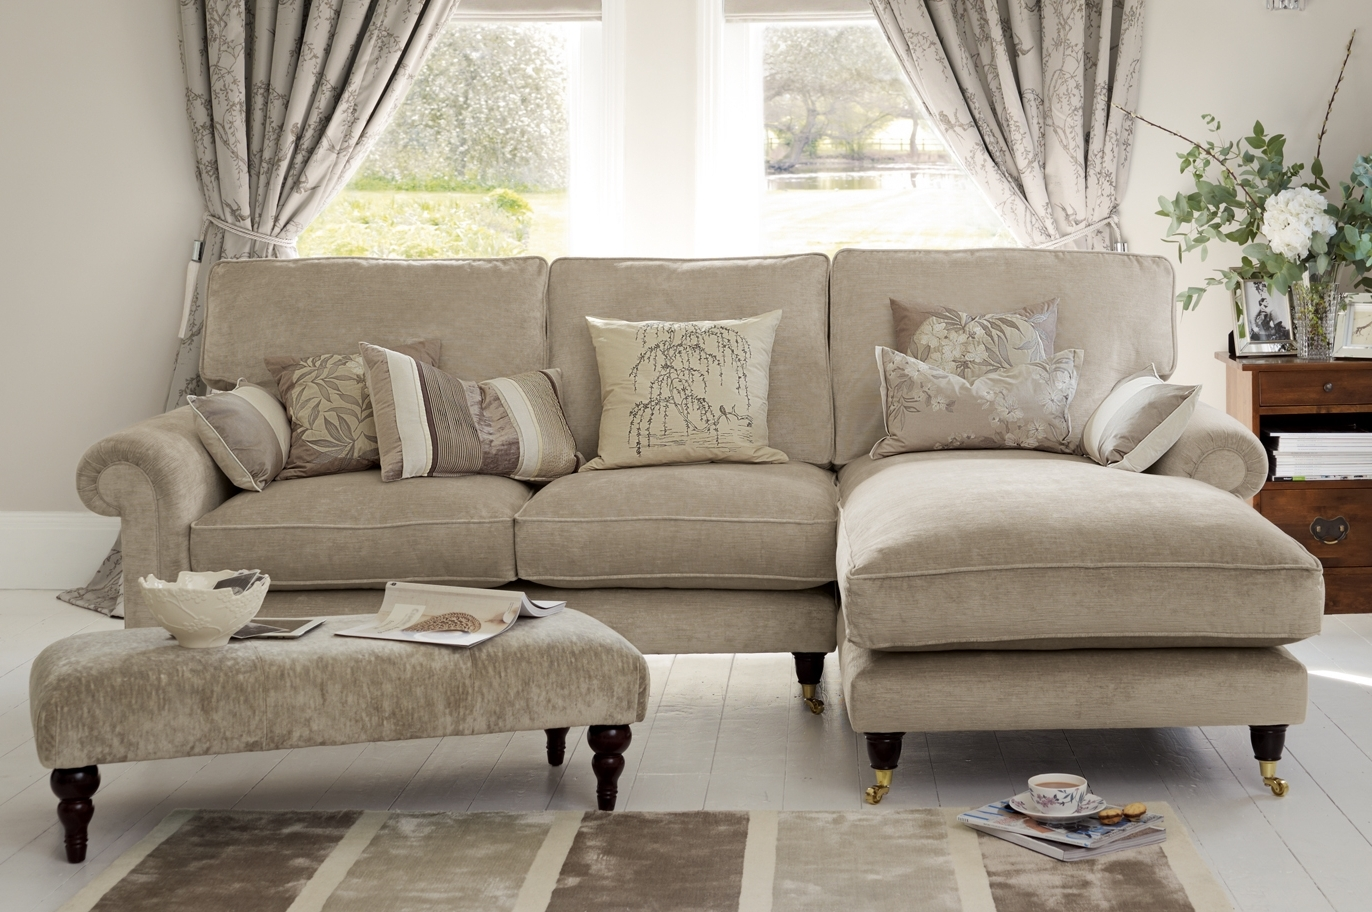 "Latest Kingston"" Sectional Sofa With Chaise In Sable Beige From Laura Within Ashley Chaise Lounges (View 8 of 15)"